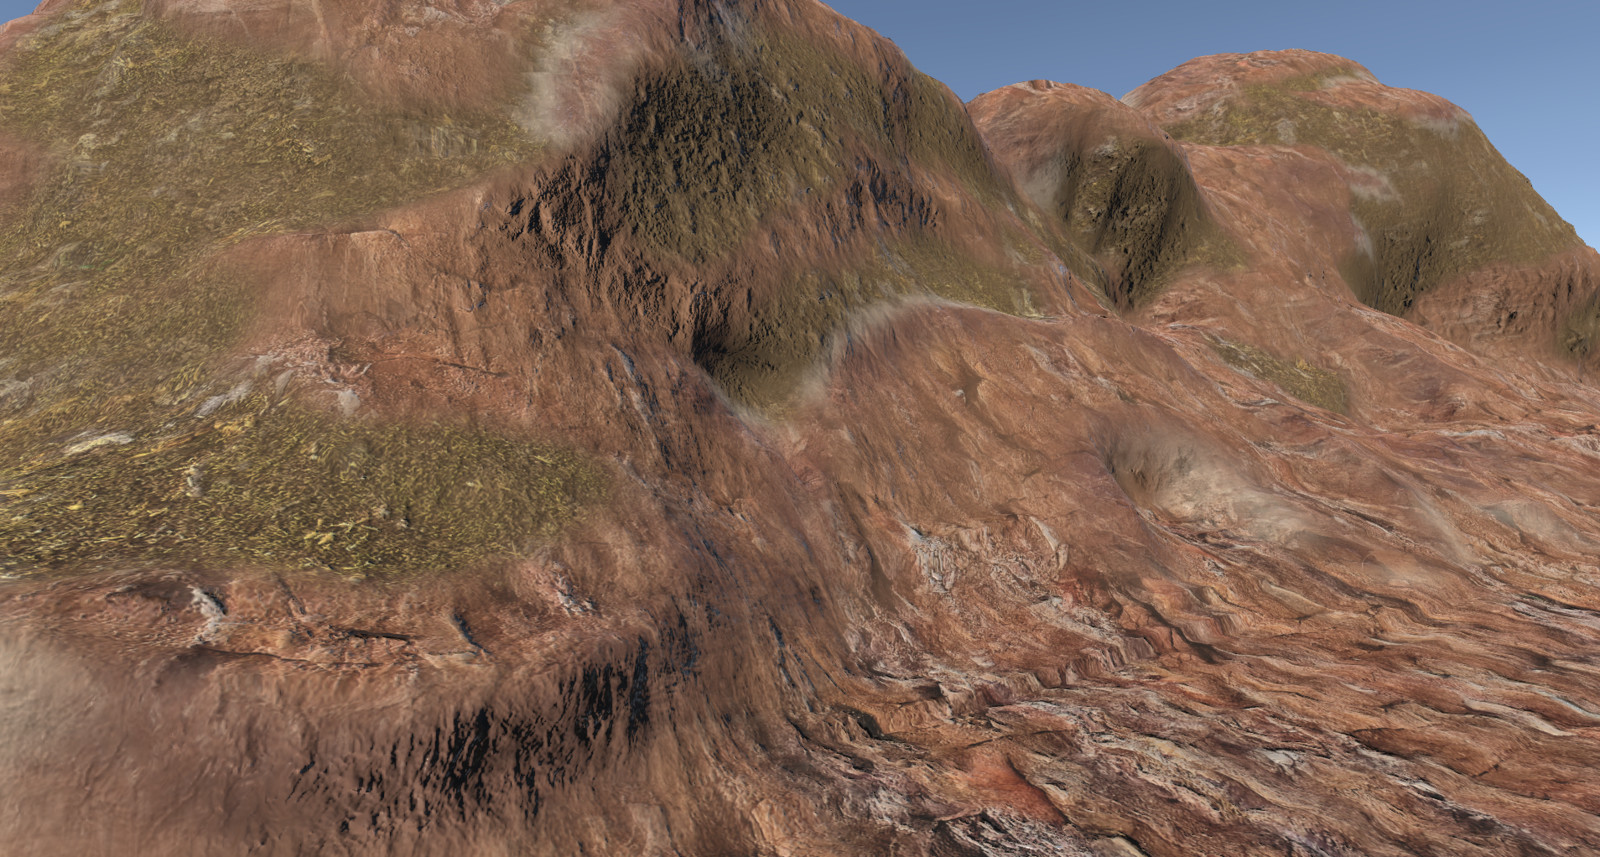 Tri-Planar mapping eliminates texture stretching on cliffs or overhangs for a more realistic environment. All without any UV maps.